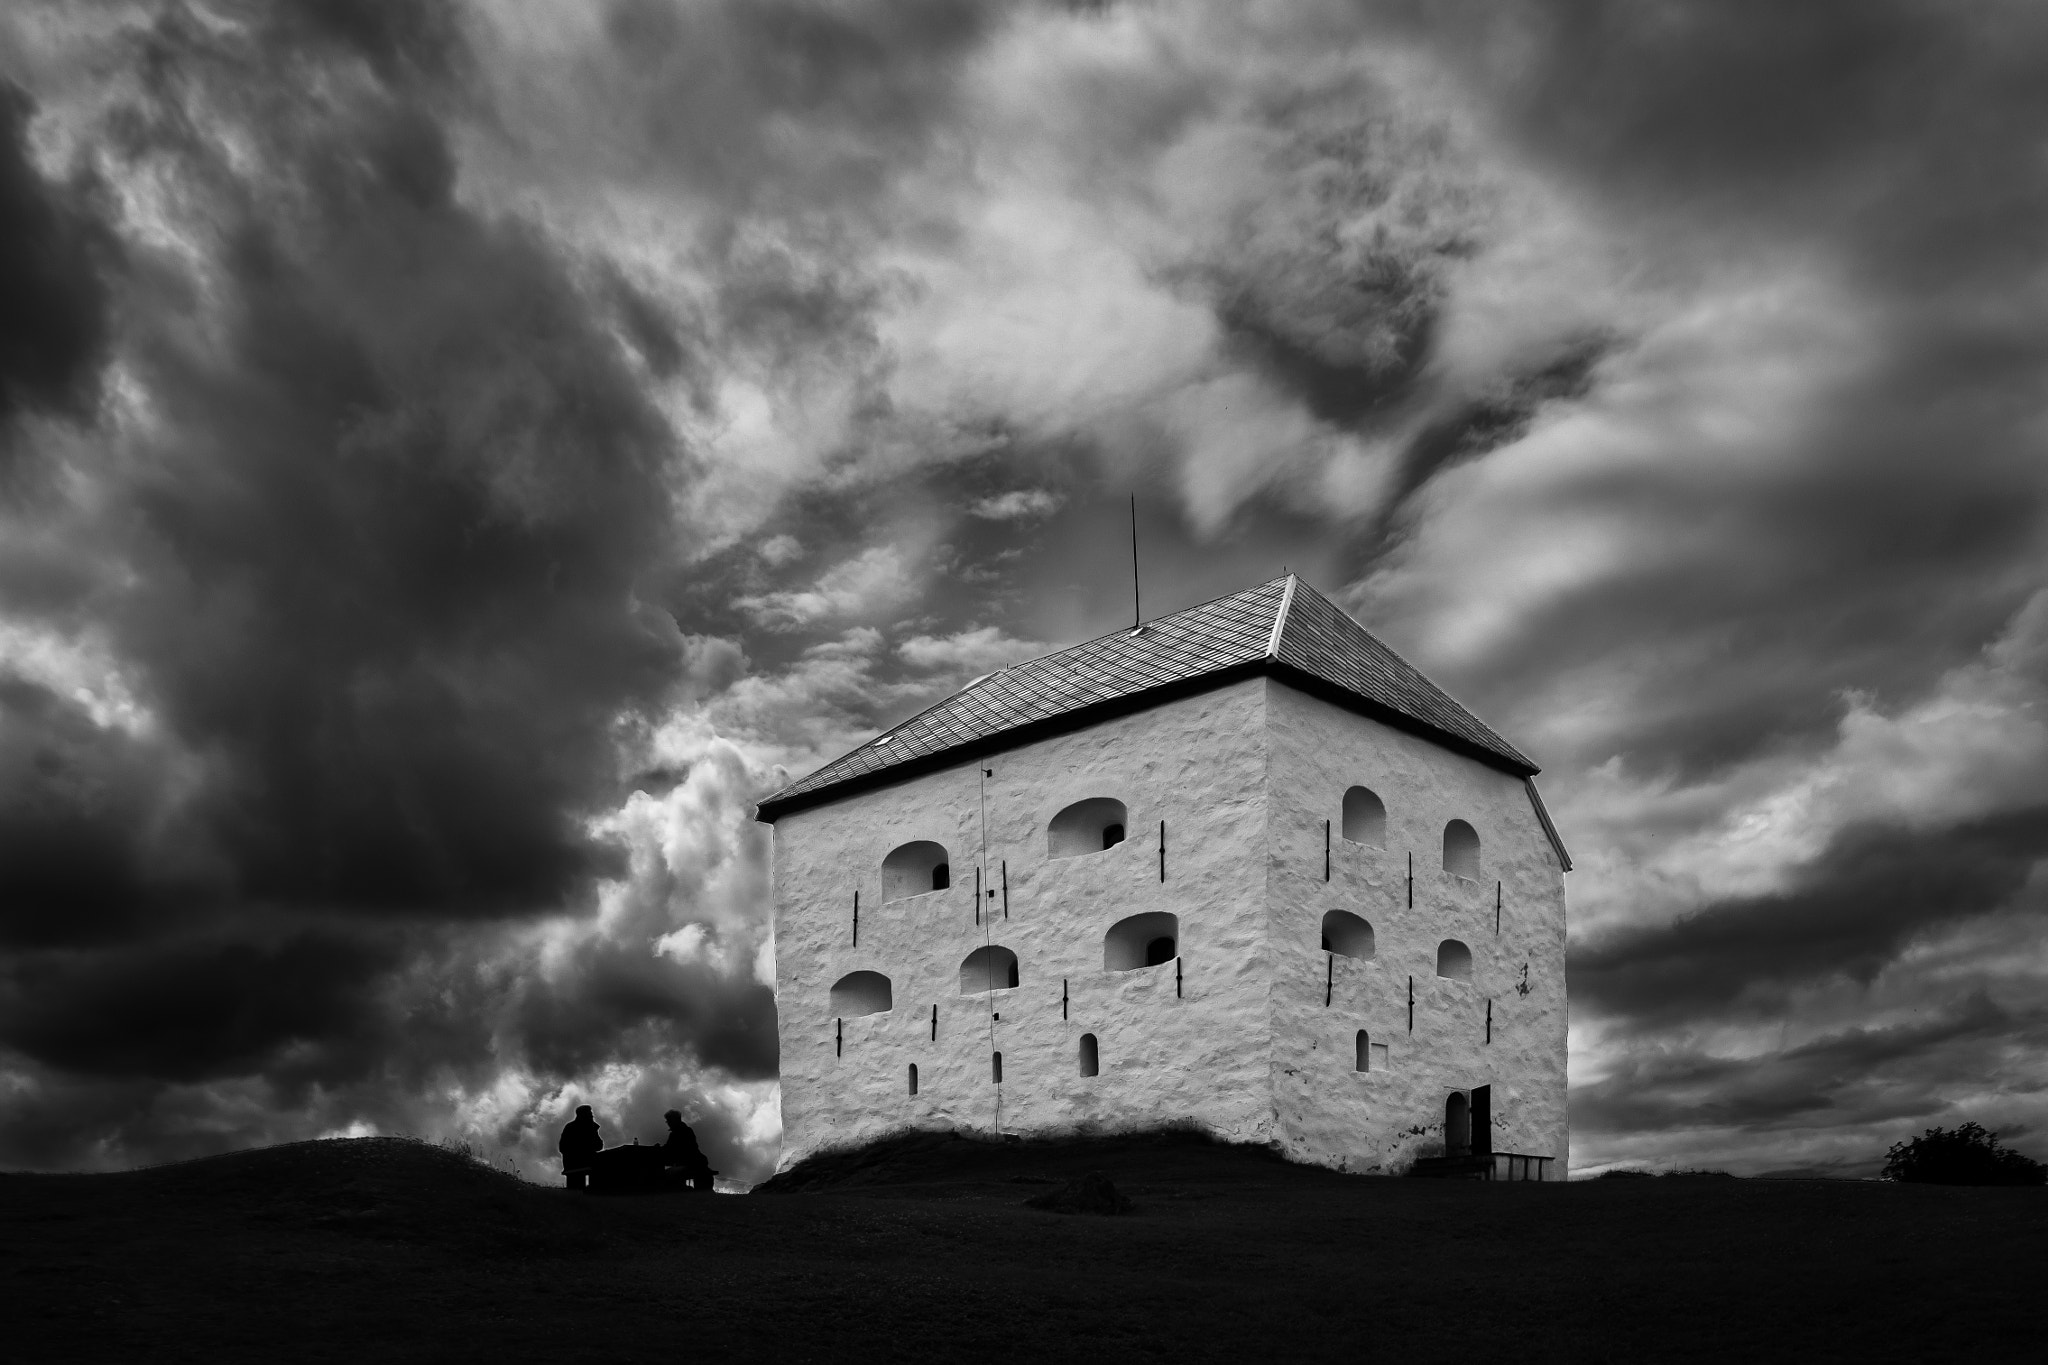 Photograph Christiansten Fortress by Thomas Østraat on 500px